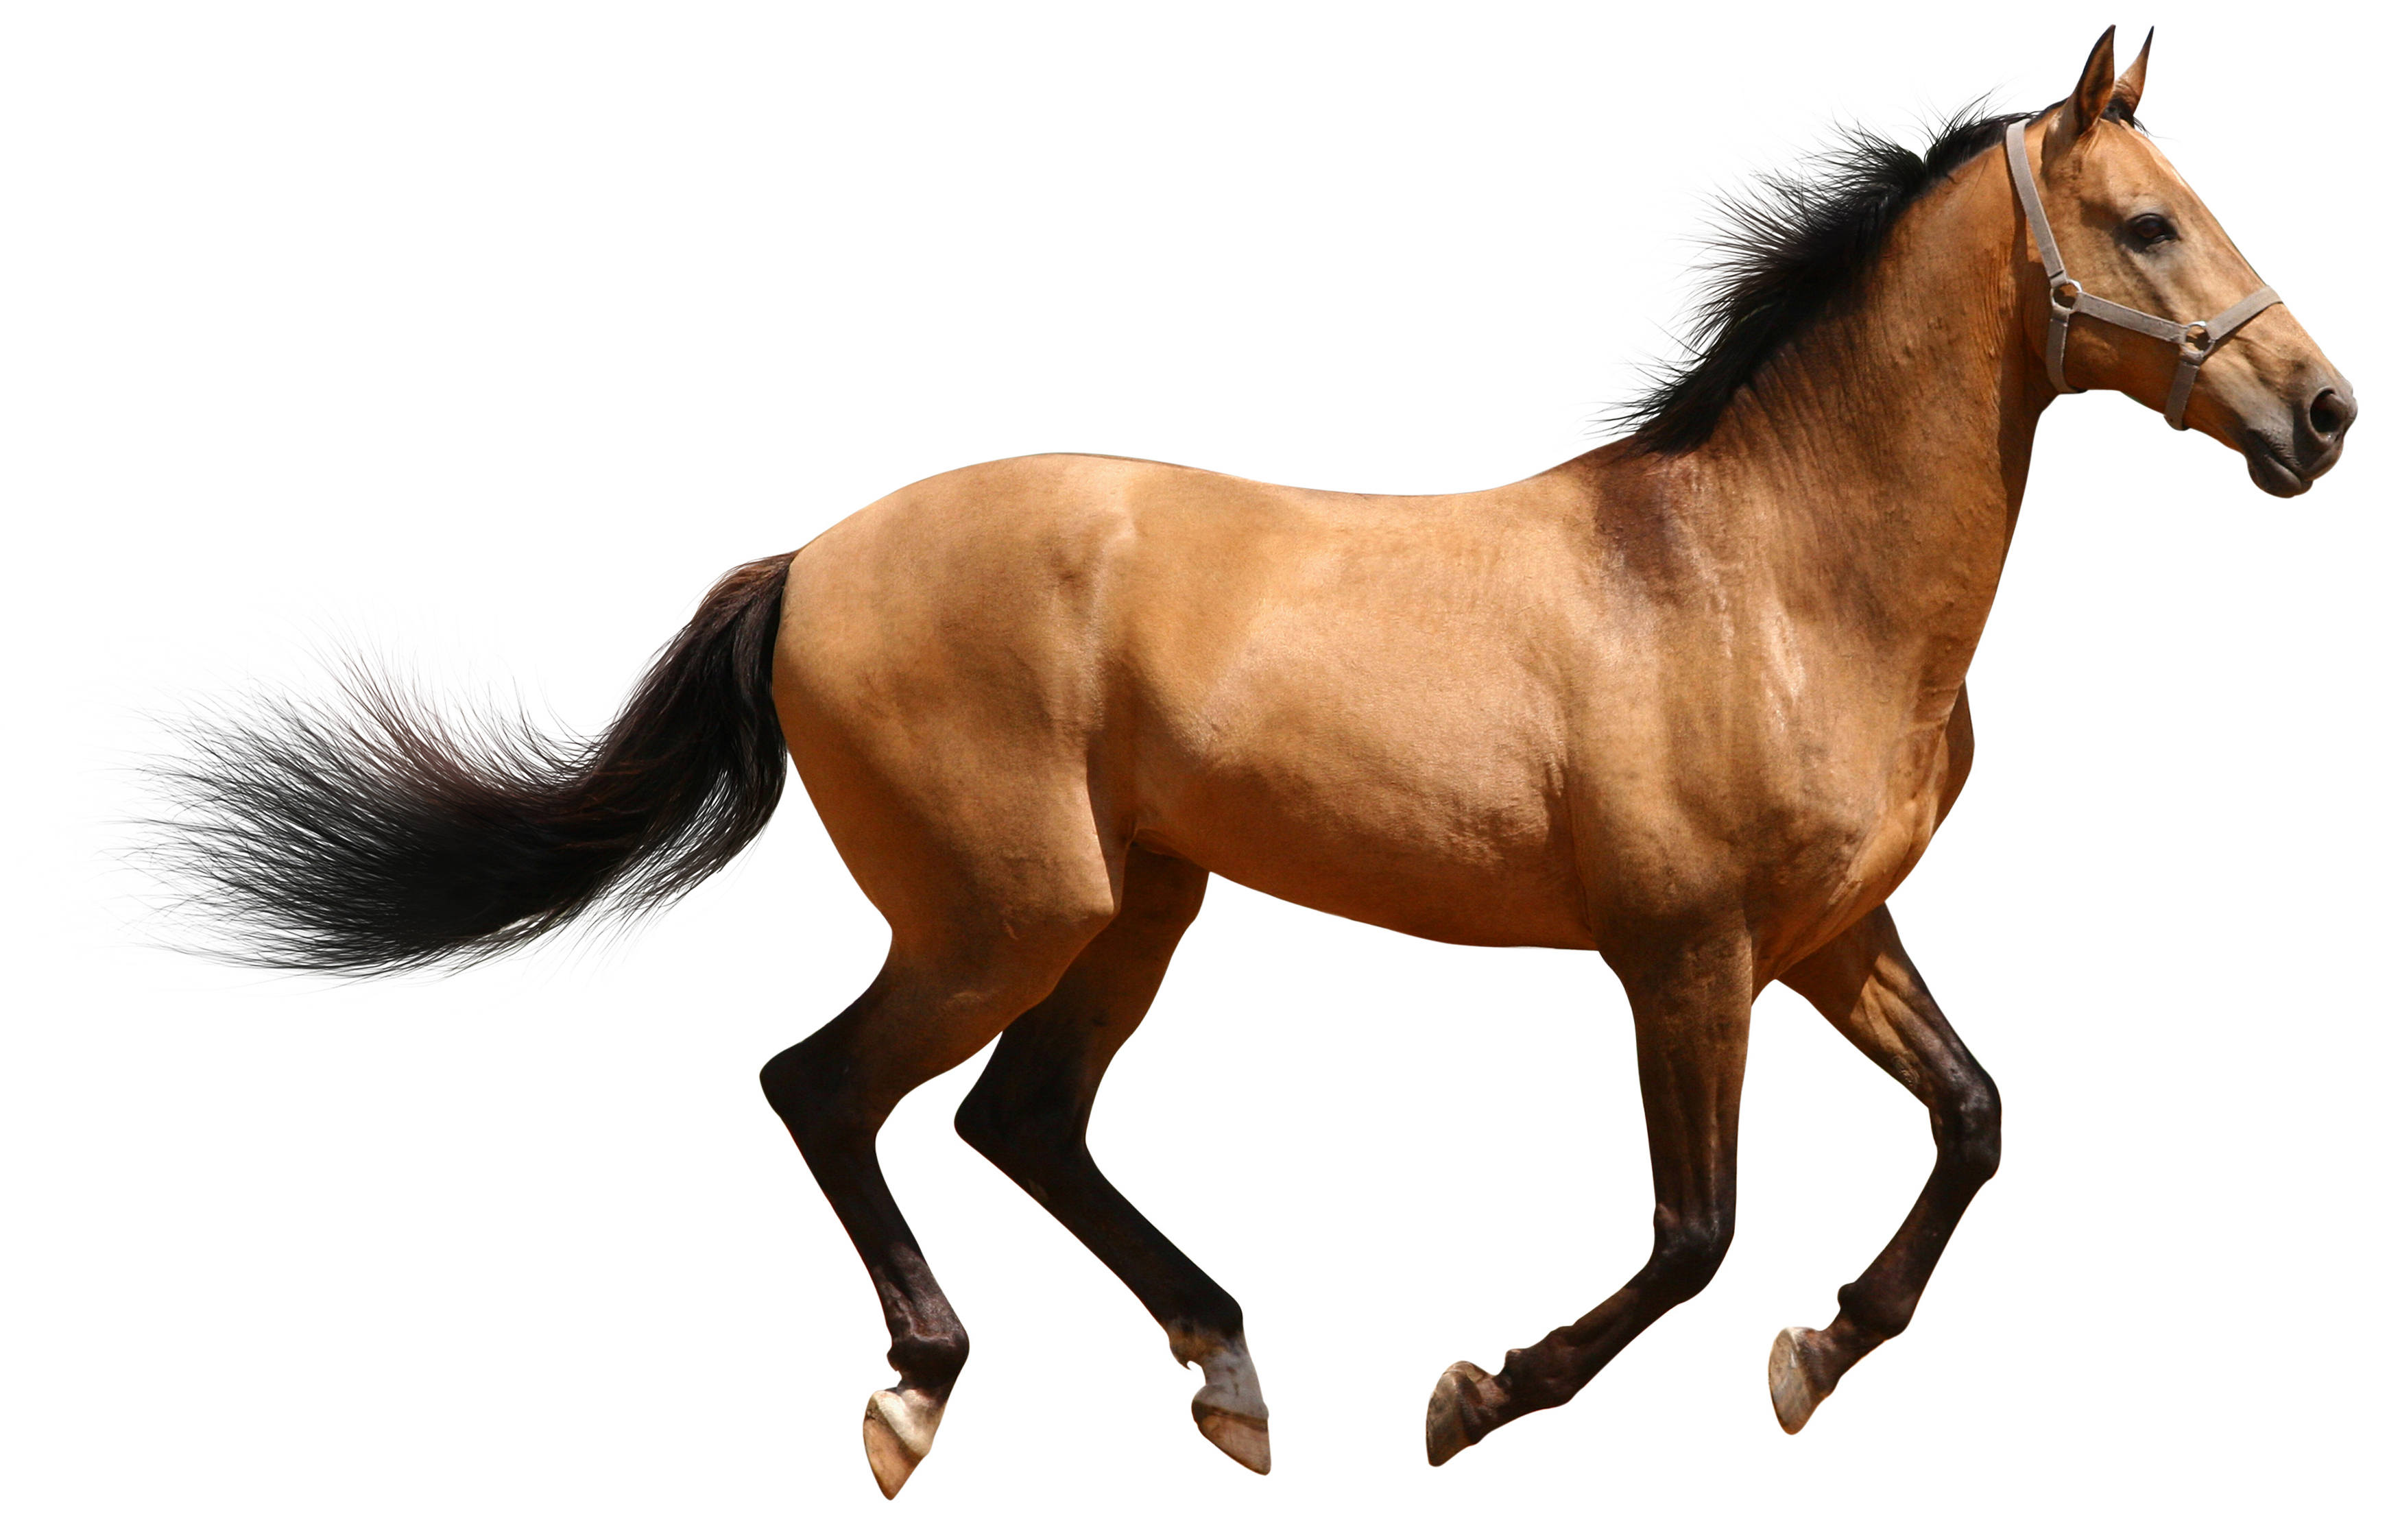 Horse Png image #22544